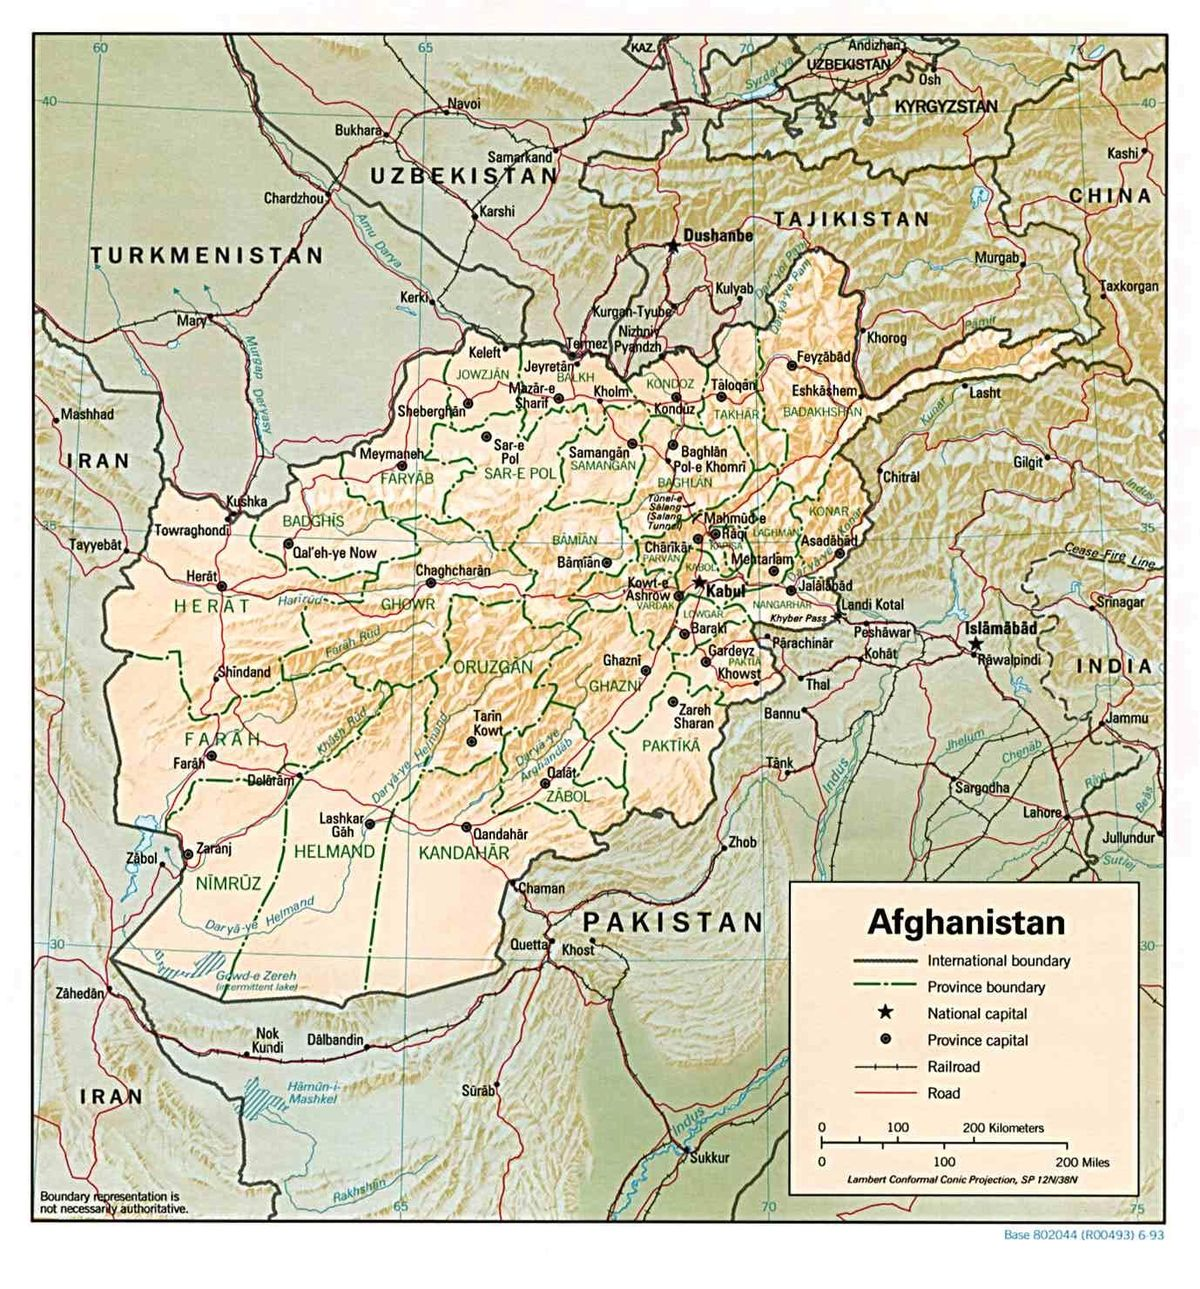 Geography of Afghanistan - Simple English Wikipedia, the free ... on physical map of pakistan, physical map of bay of bengal, physical map of the far east, physical map of dubai, physical map of southern italy, physical features of afghanistan, physical map of georgia, physical map of ancient assyria, physical map of north china, physical map of nauru, physical map of turkey, physical map of norway, physical map of madagascar, physical and political map of louisiana, physical map of bodies of water, physical map of n. america, physical map somalia, physical map of france, physical map of kenya, physical map of russia,